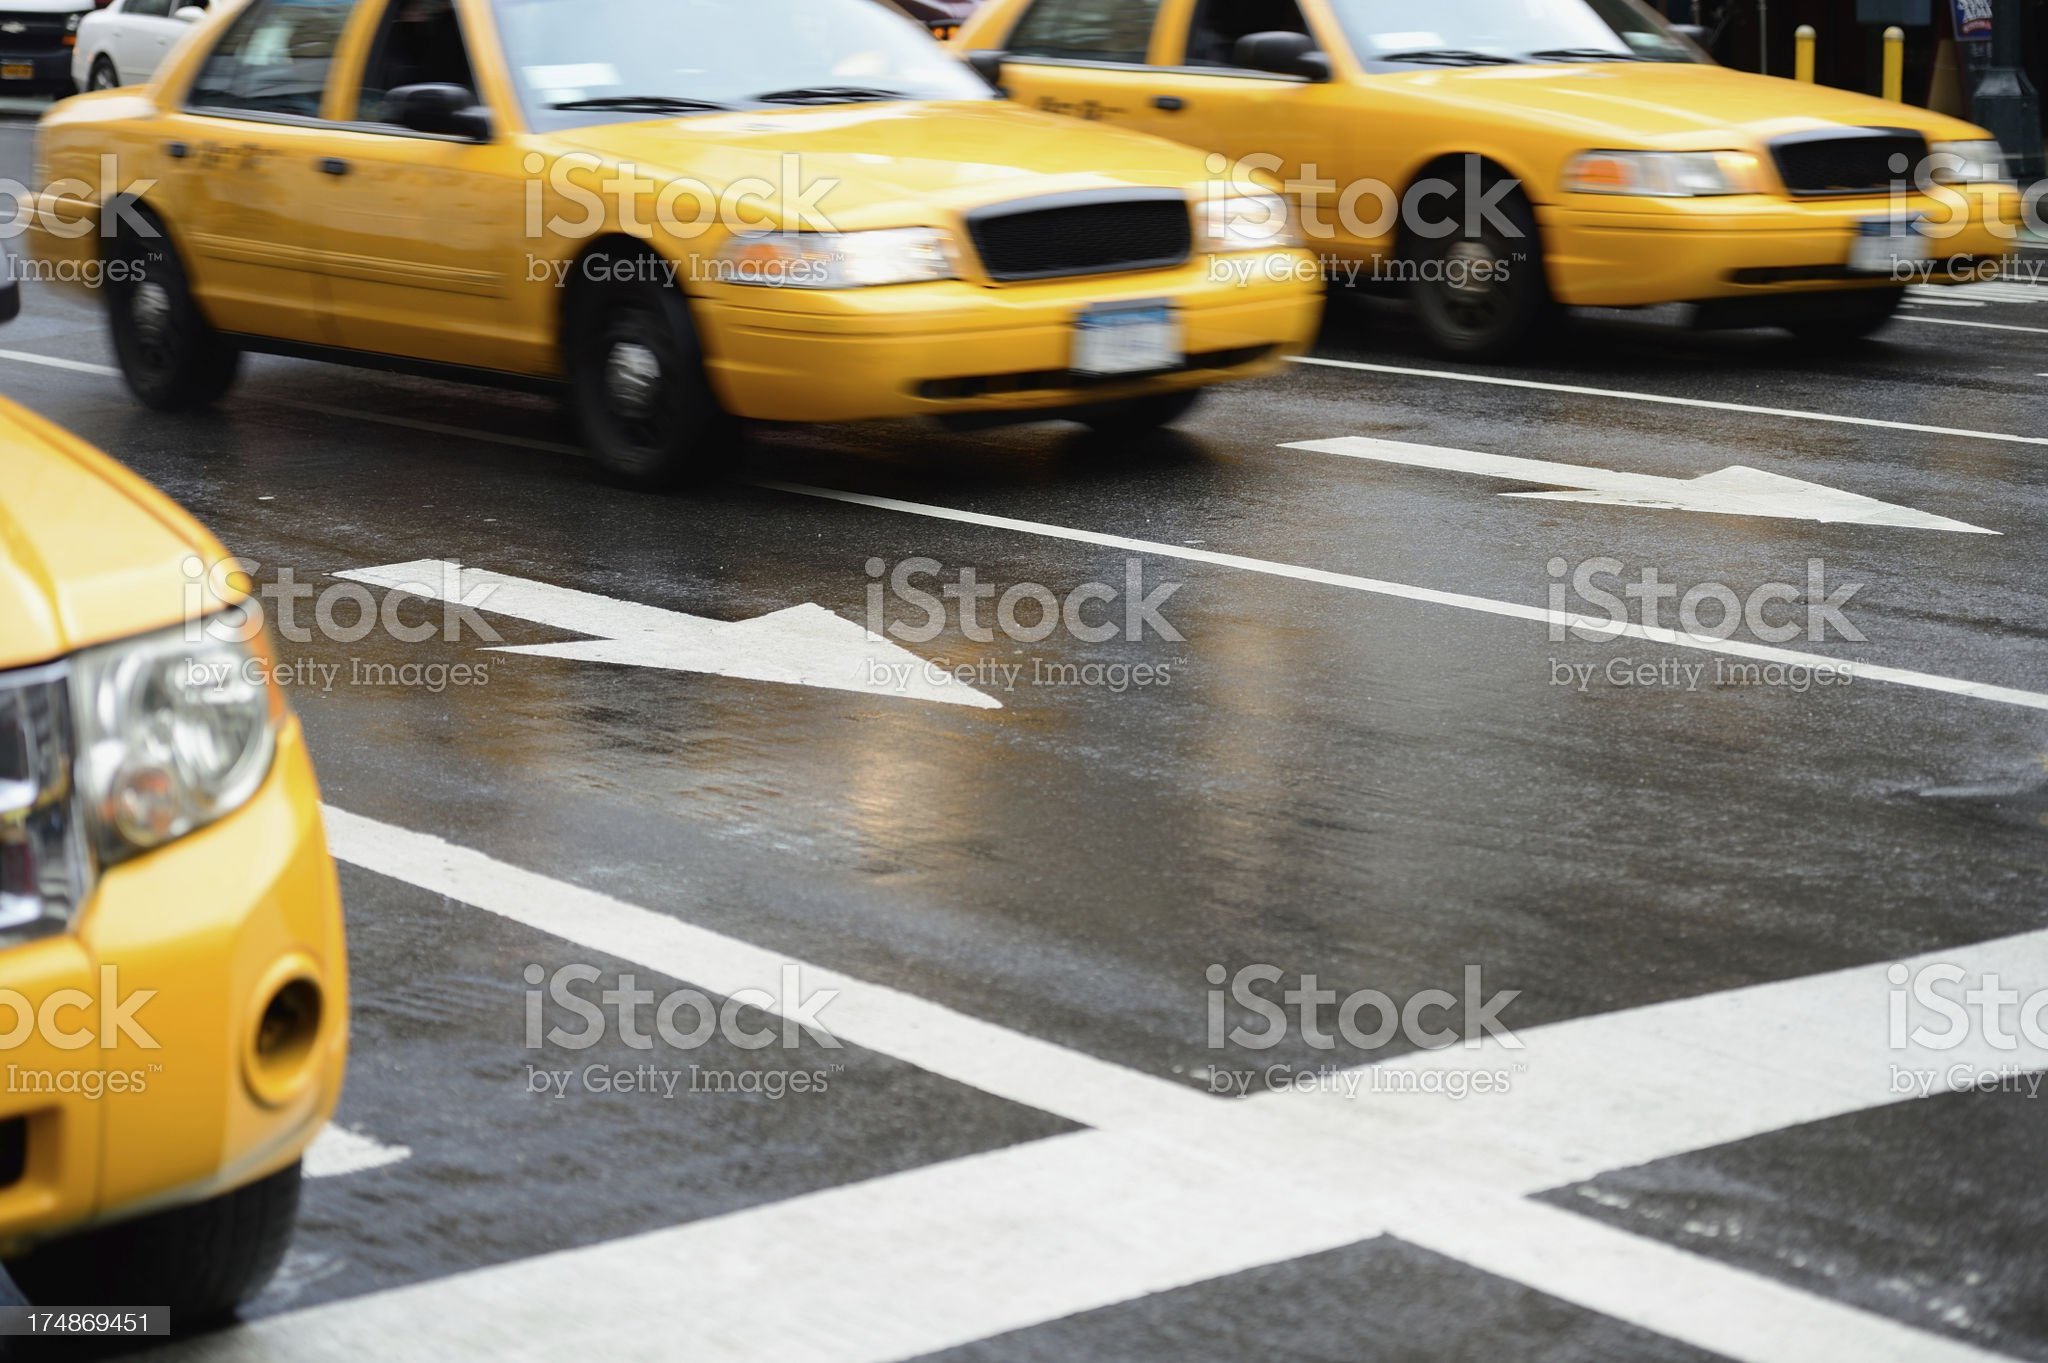 Yellow cabs taxis on the streets of New York City royalty-free stock photo